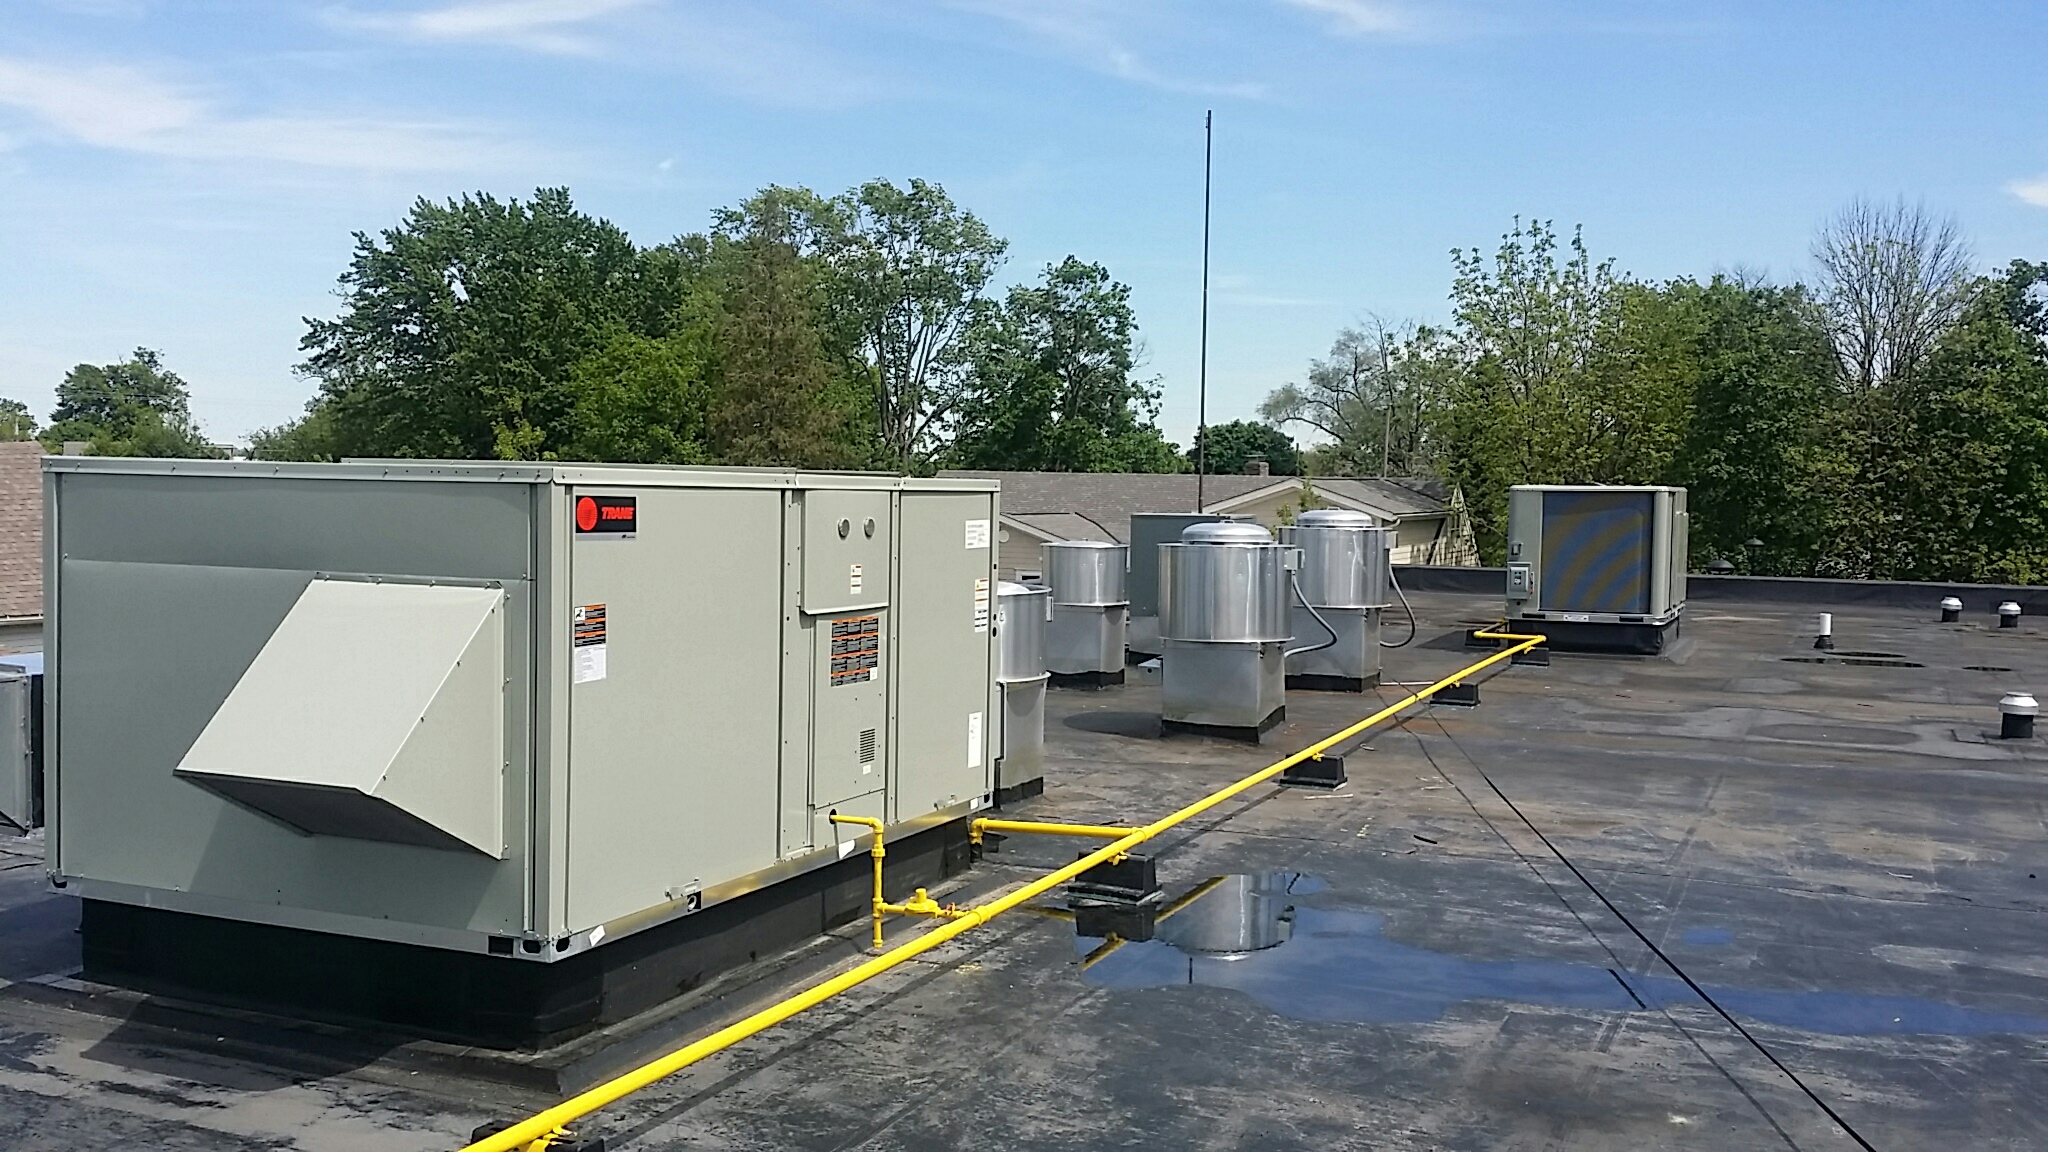 Hilliard, OH - Trane Voyager and Trane precedent rooftop heating cooling package units  Starliner Diner  new construction  Main Street  downtown Hilliard